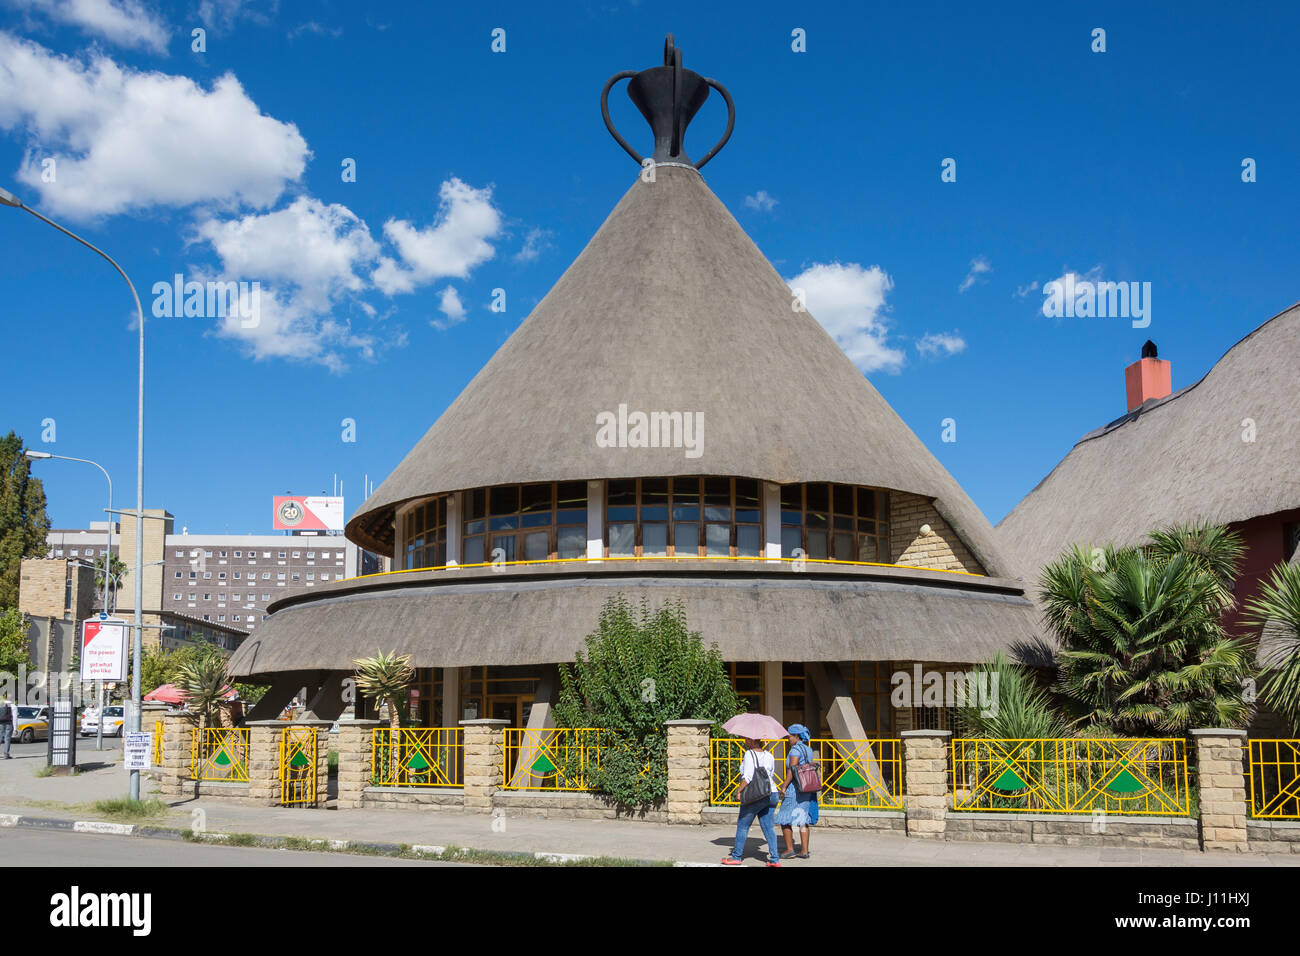 Les Basothos Hat Craft Centre, Kingsway, Maseru, District de Maseru, Lesotho Photo Stock